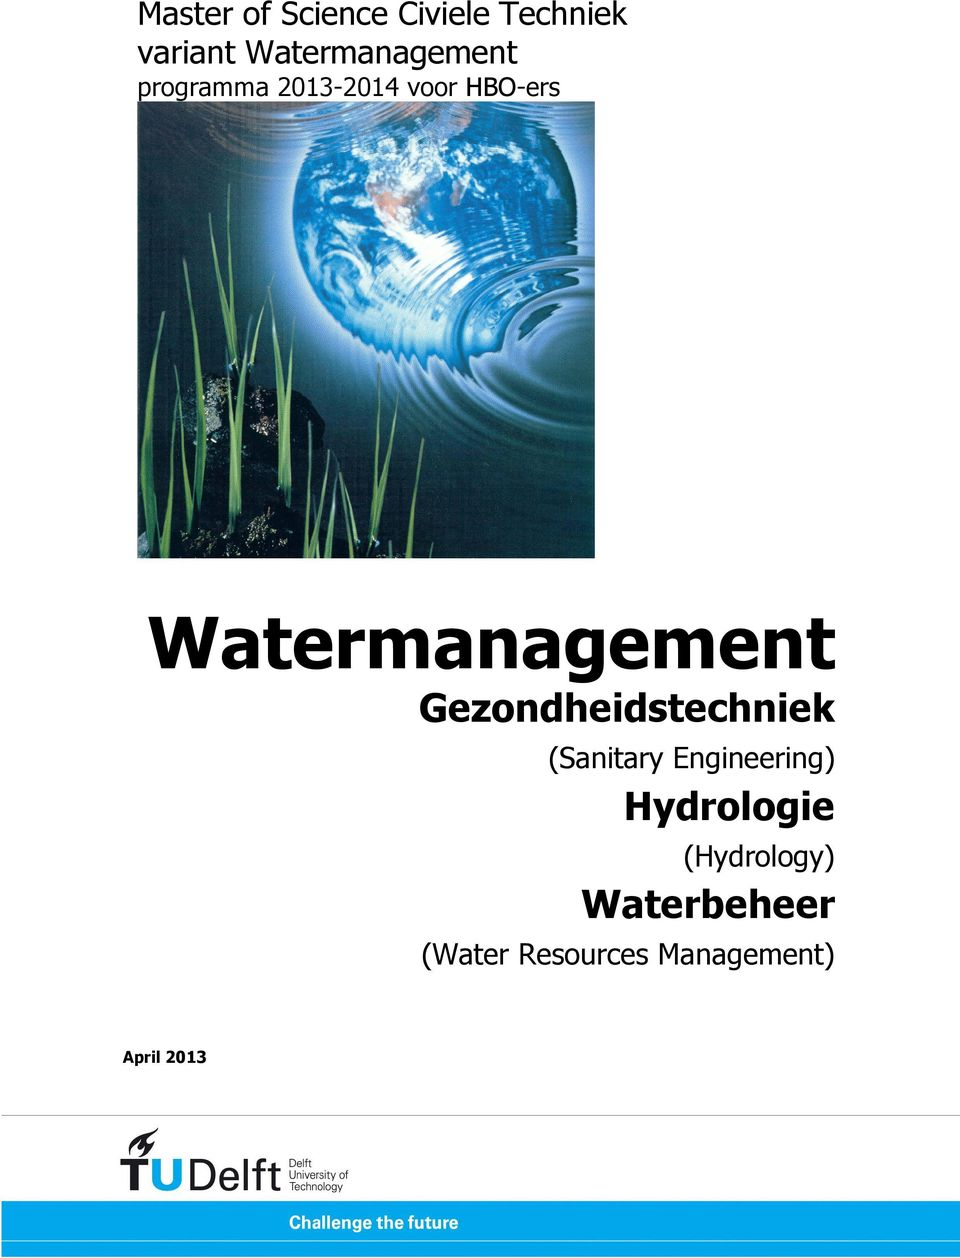 Watermanagement Gezondheidstechniek (Sanitary